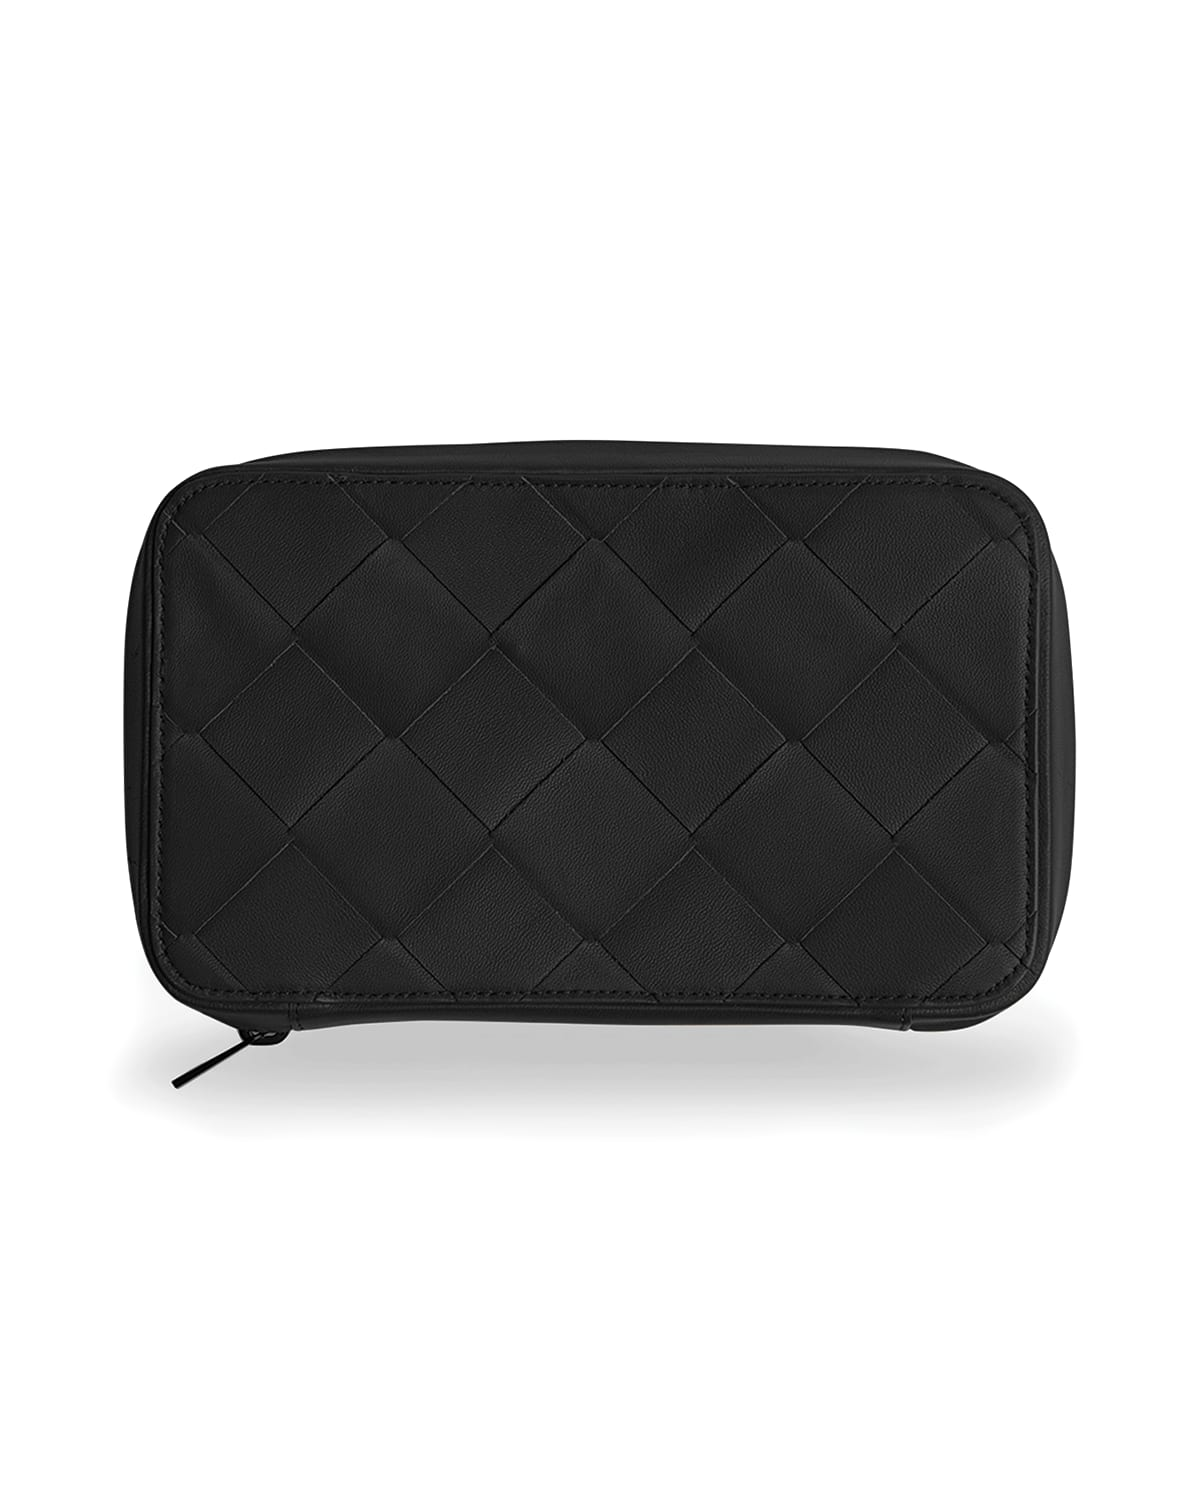 Men's Woven Leather Travel Toiletry Case